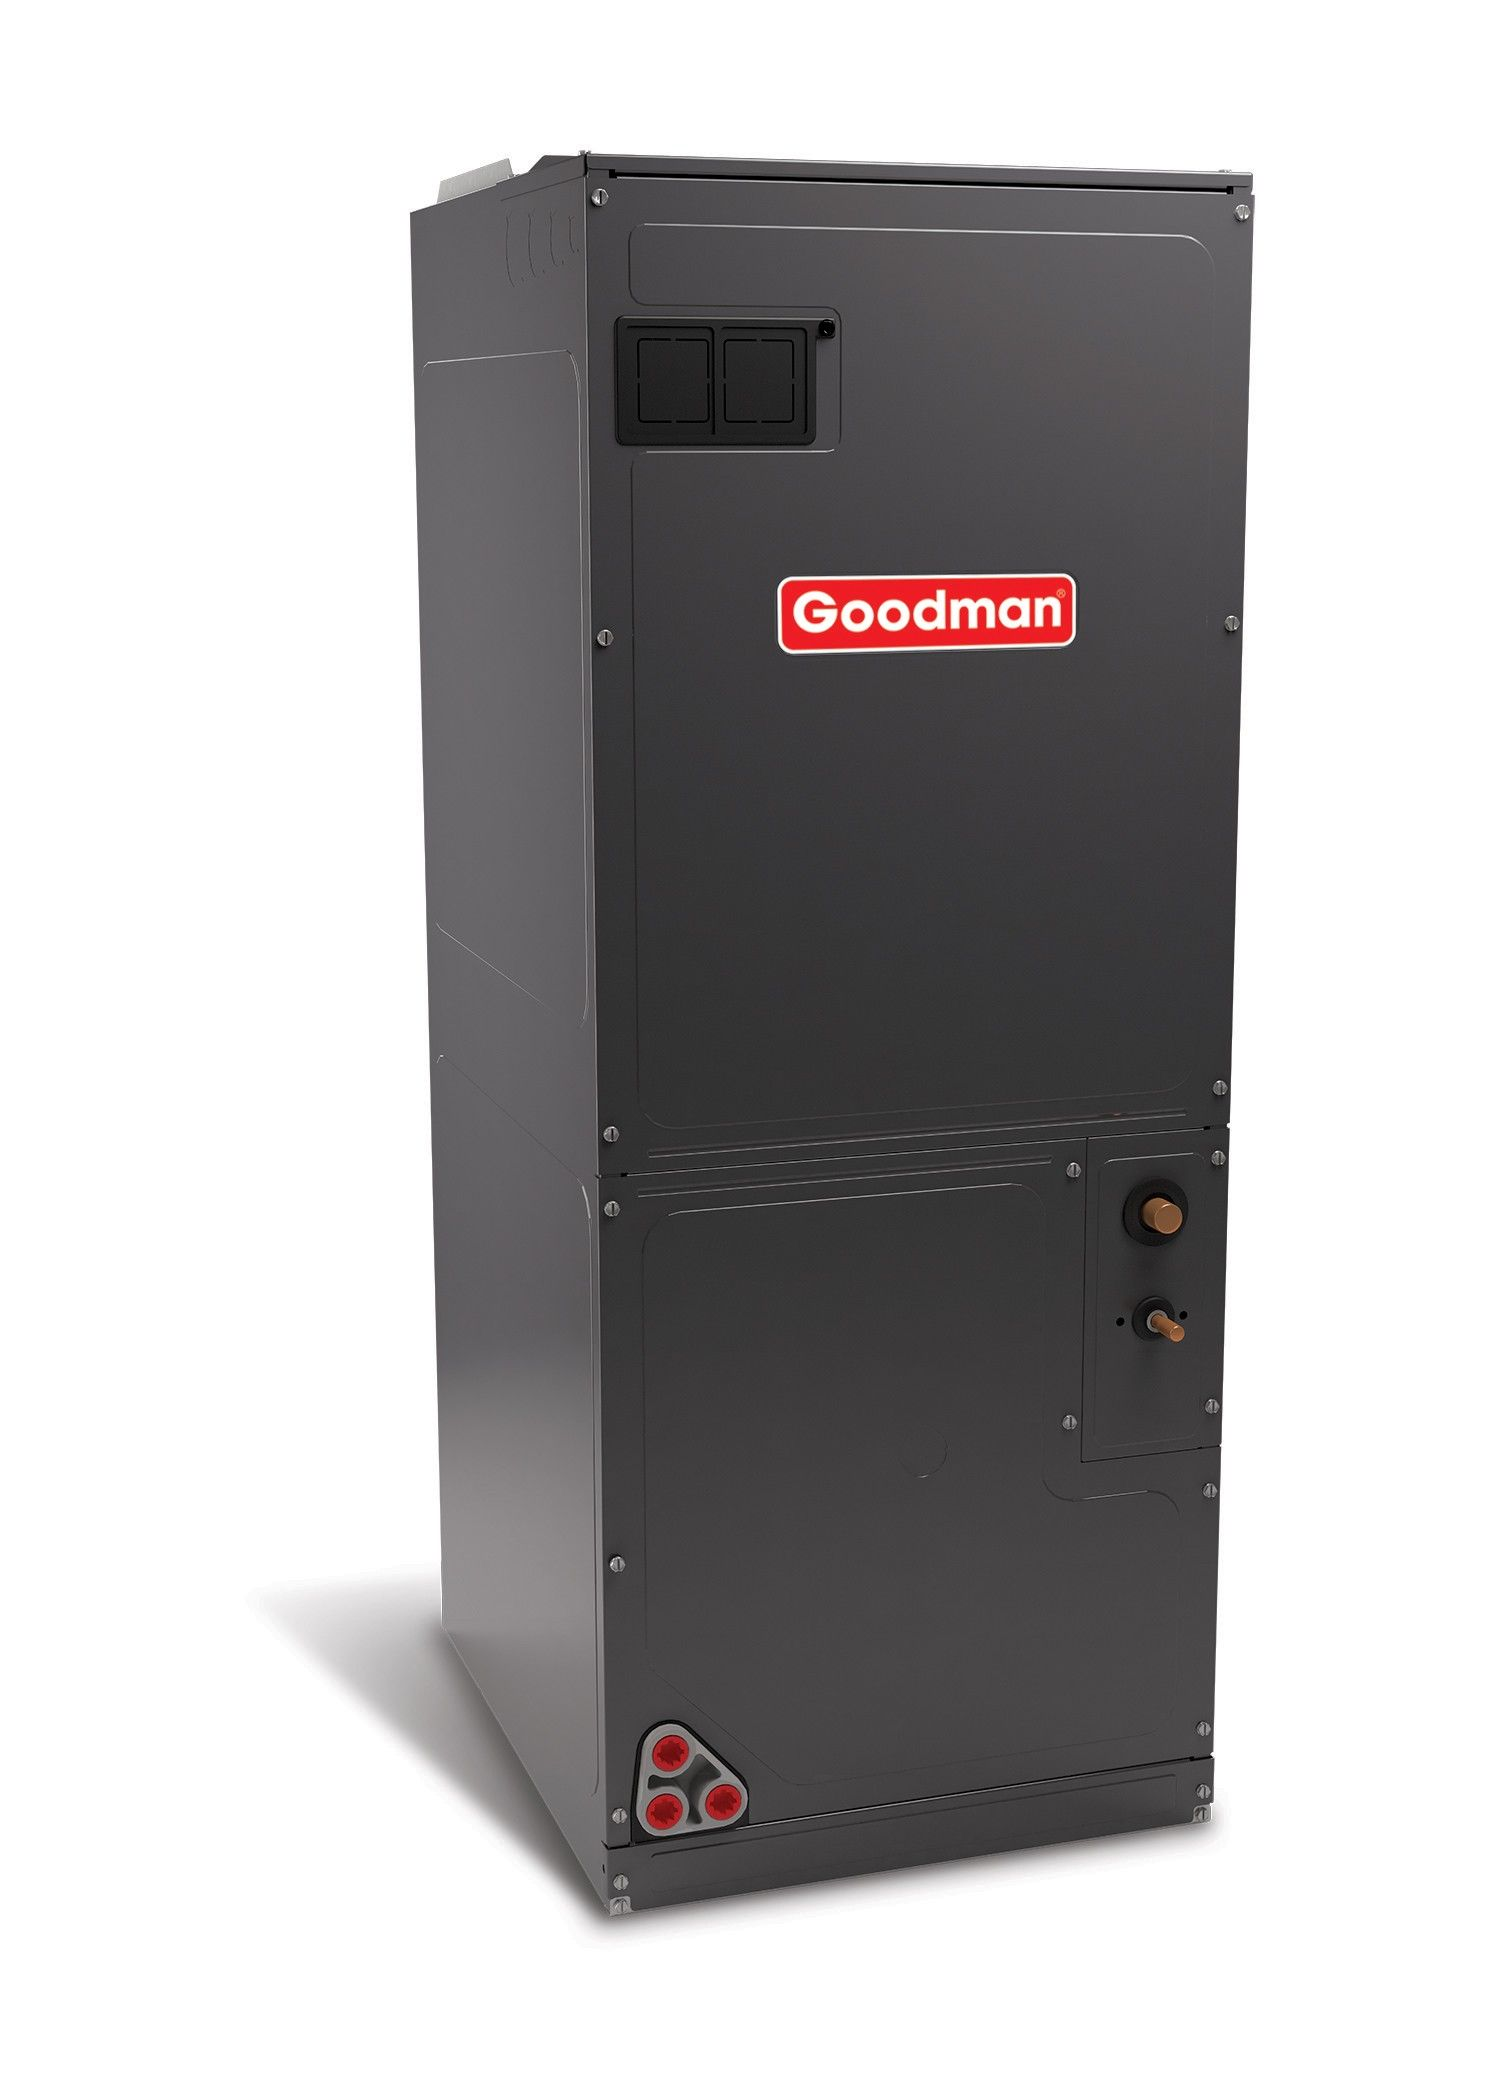 4.0 Ton Goodman AVPTC Variable Speed Air Handler